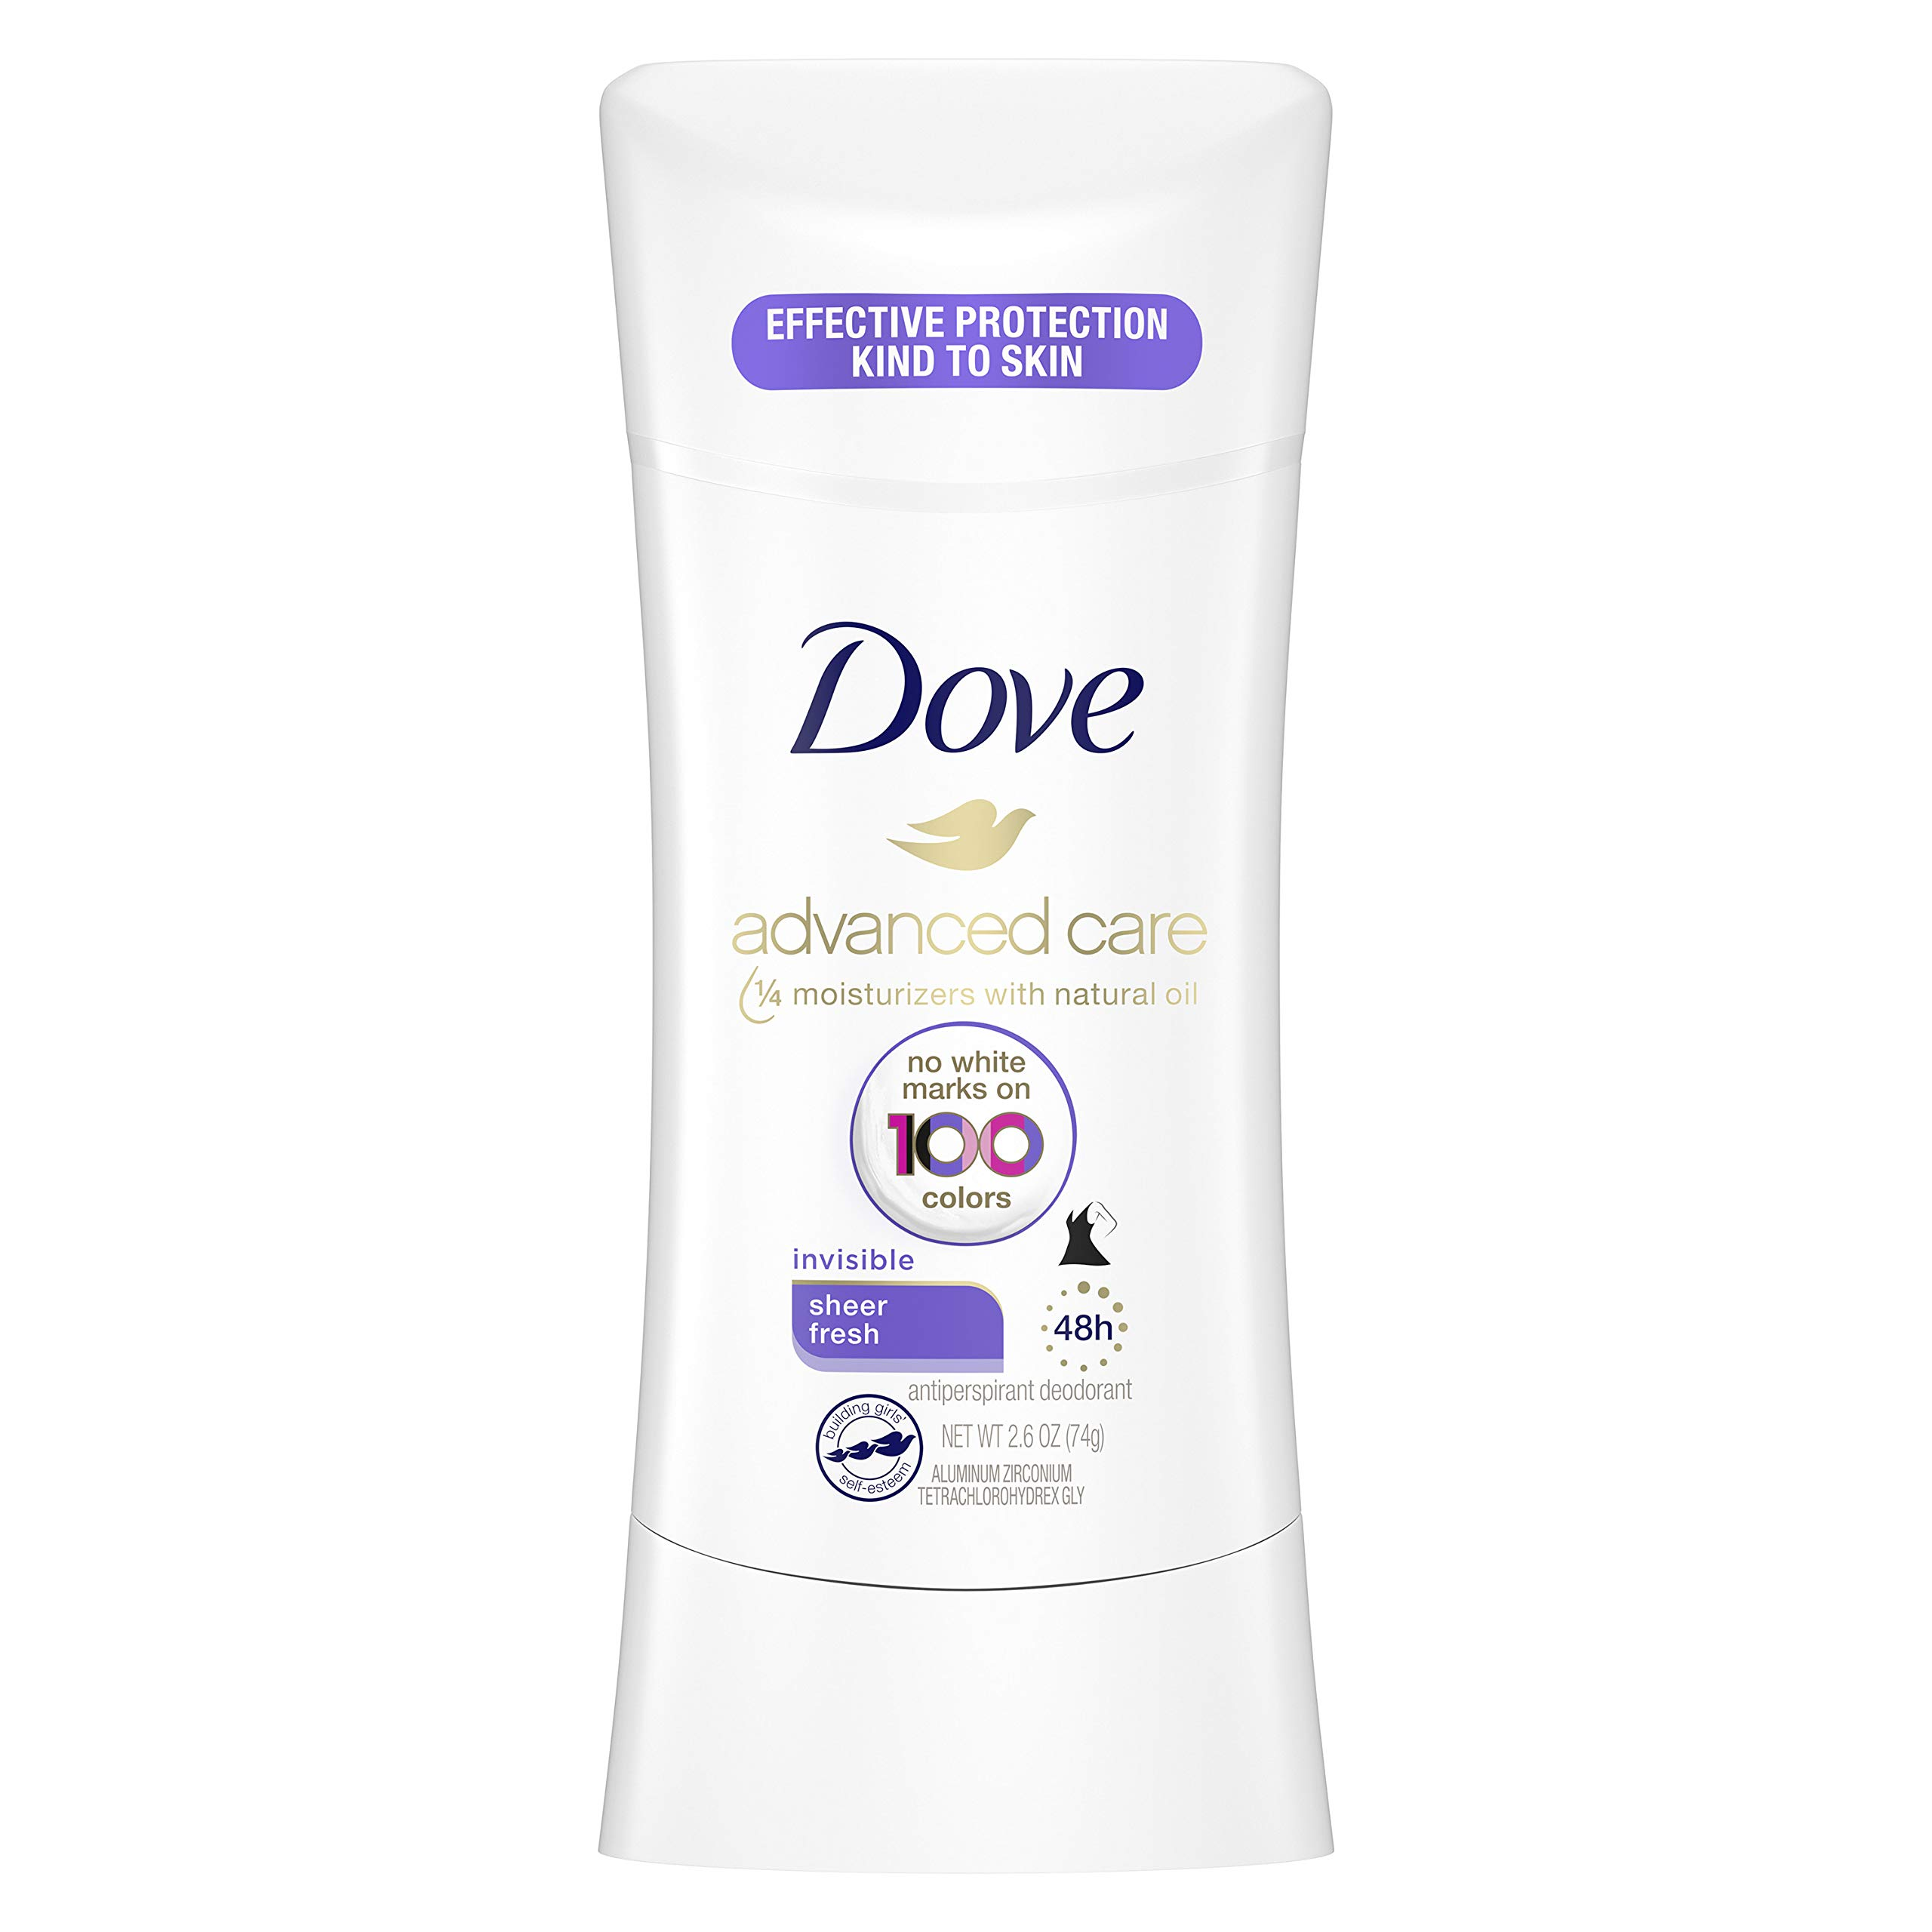 Dove Advanced Care Invisible Antiperspirant Deodorant Stick No White Marks on 100 Colors Sheer Fresh 48-Hour Sweat and Odor Protecting Deodorant for Women 2.6 oz